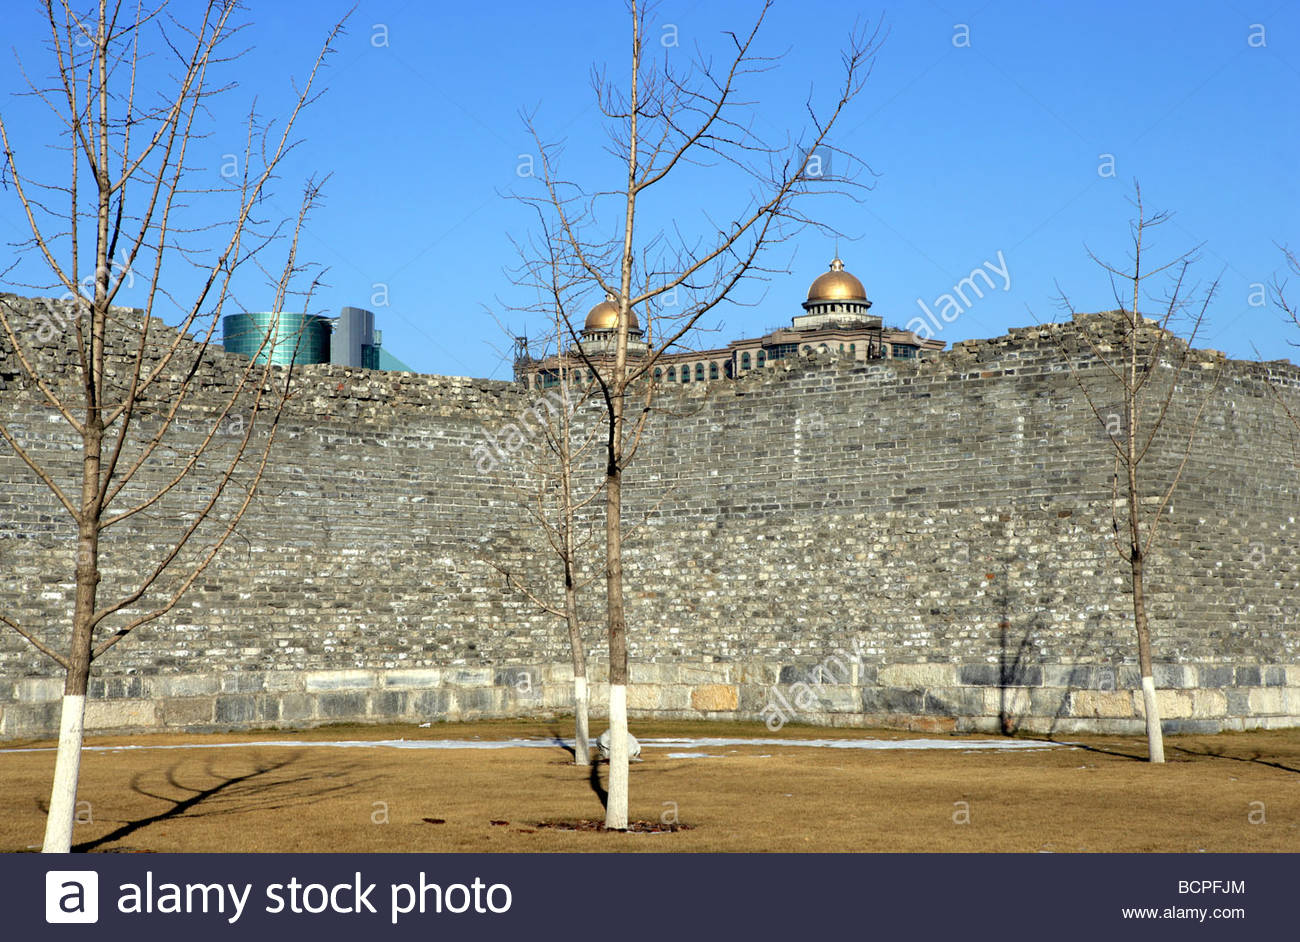 Pavilion of Spreading Righteousness Běijīng, Ming Dynasty City Wall Relics Park, Beijing, China Stock Photo ...